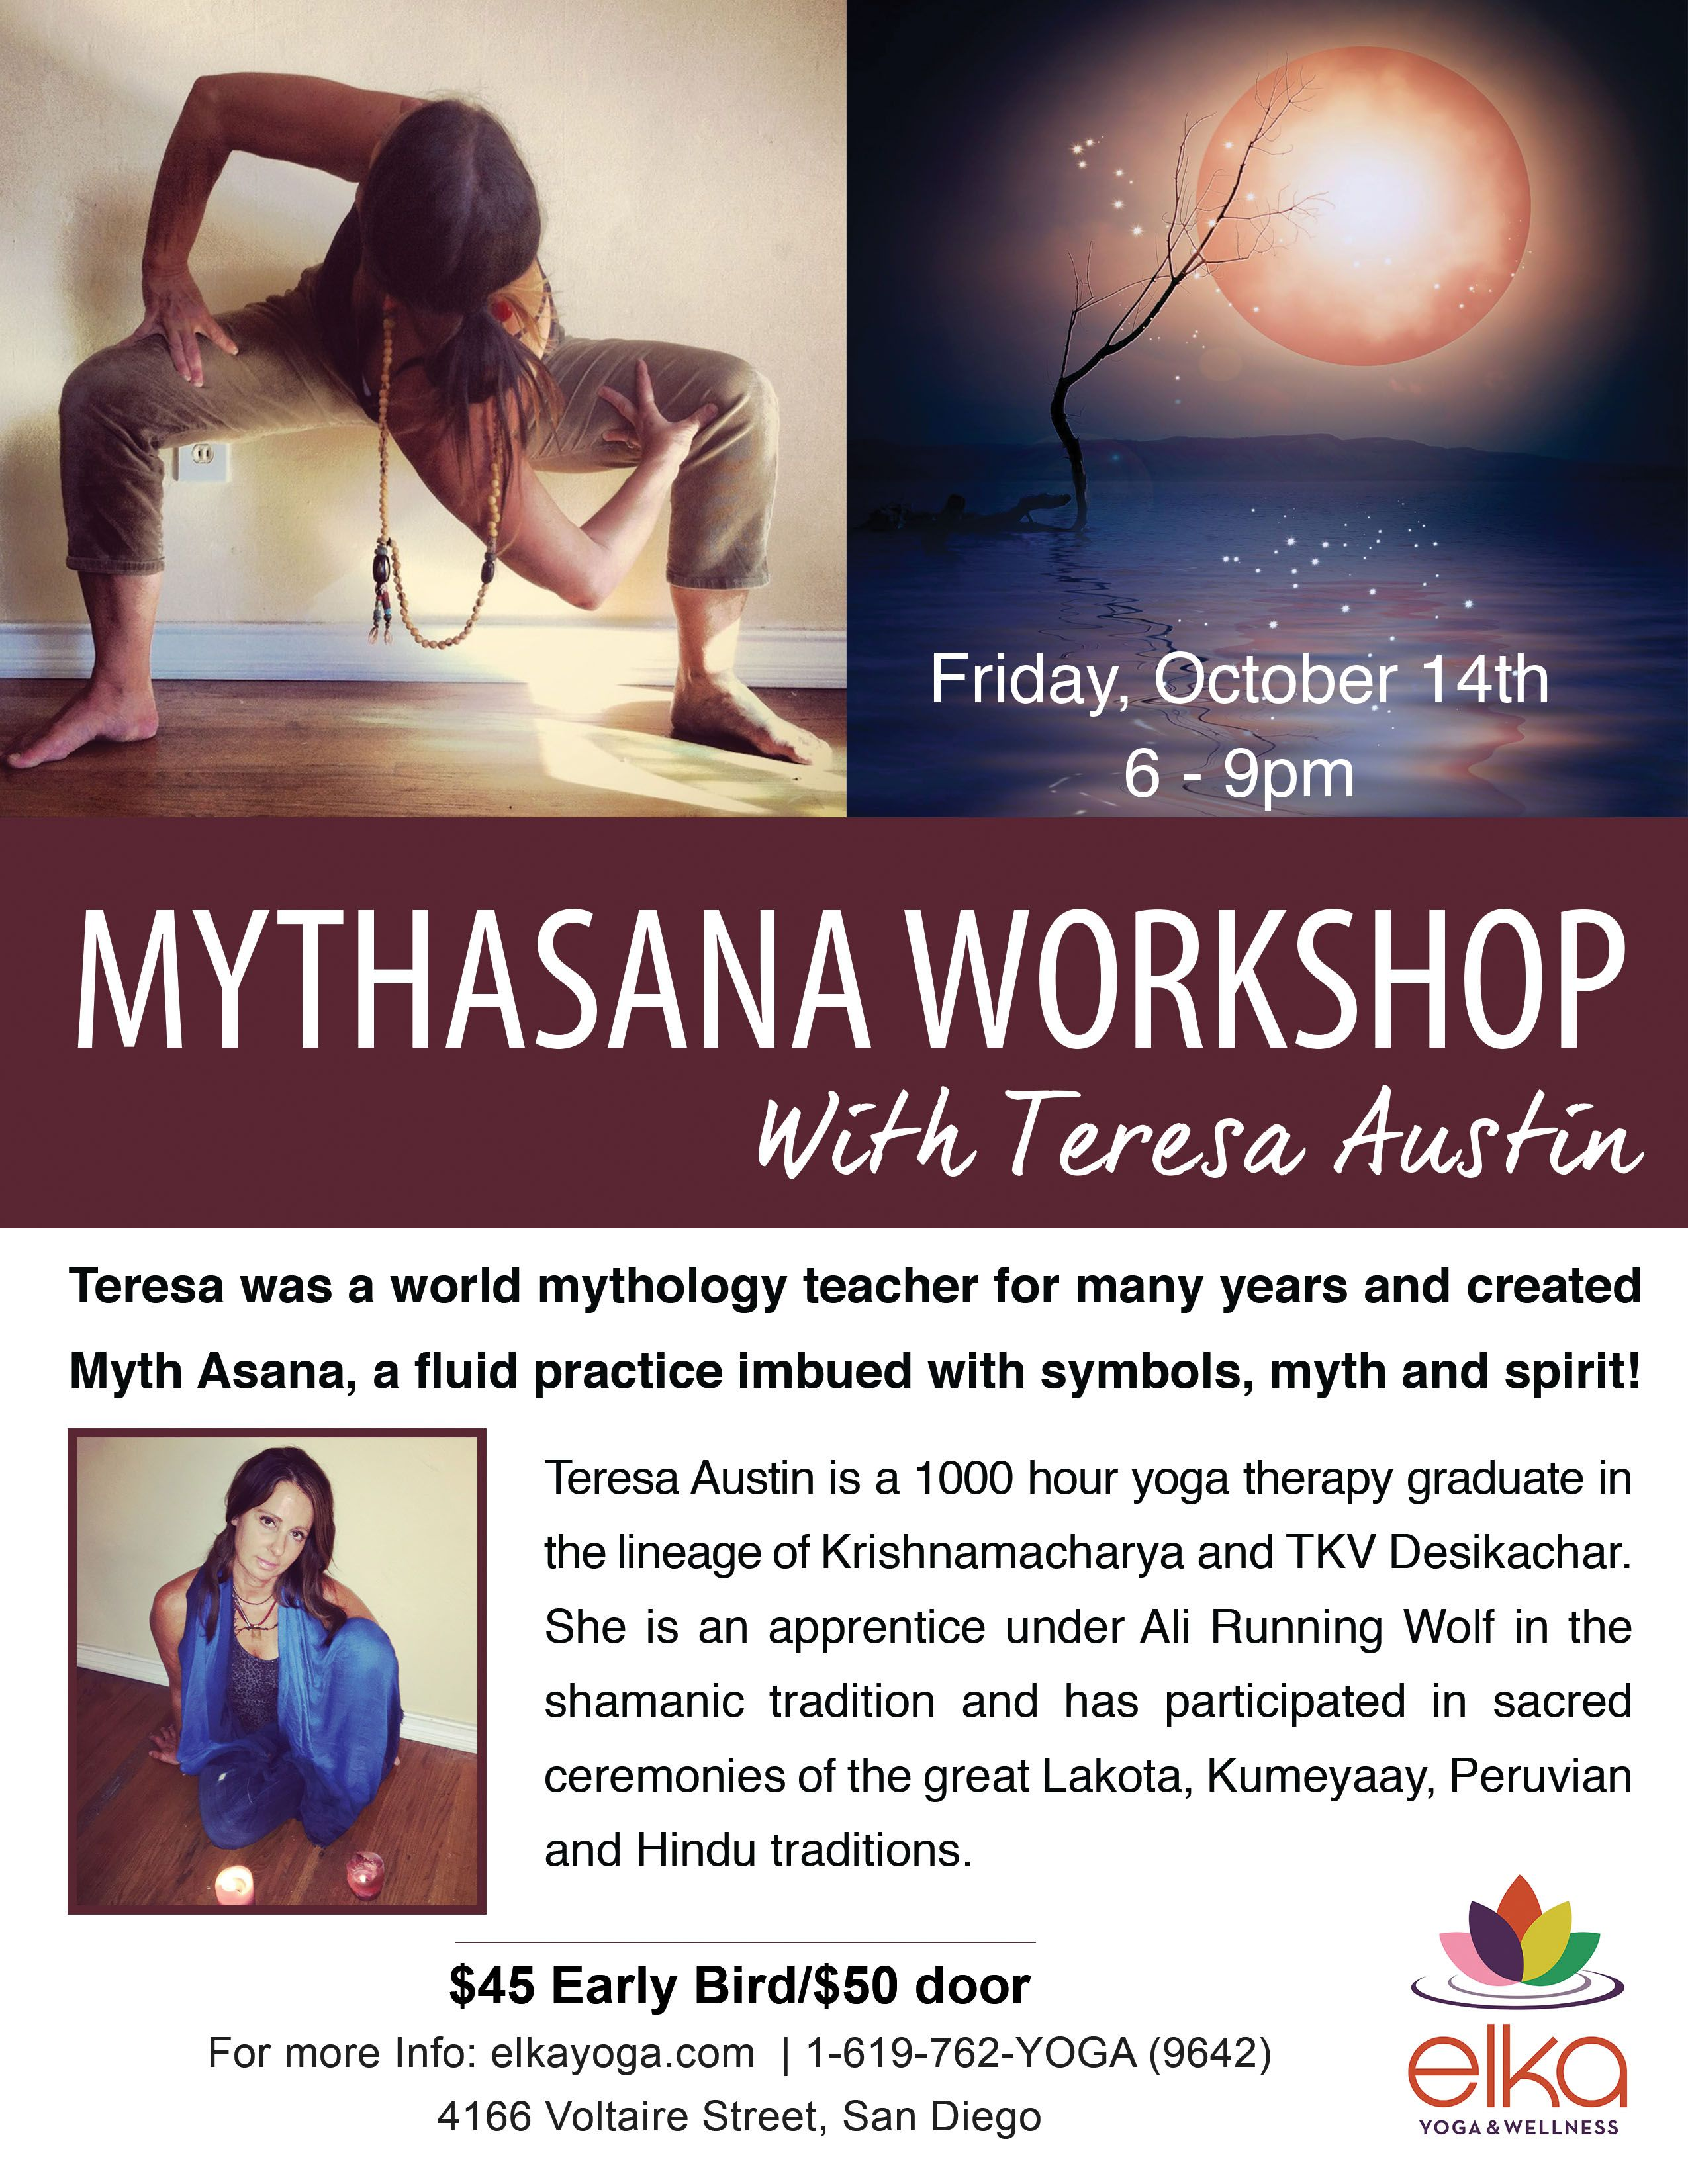 Mythasana Workshop Flyer Design By Camila Badaro Client Elka